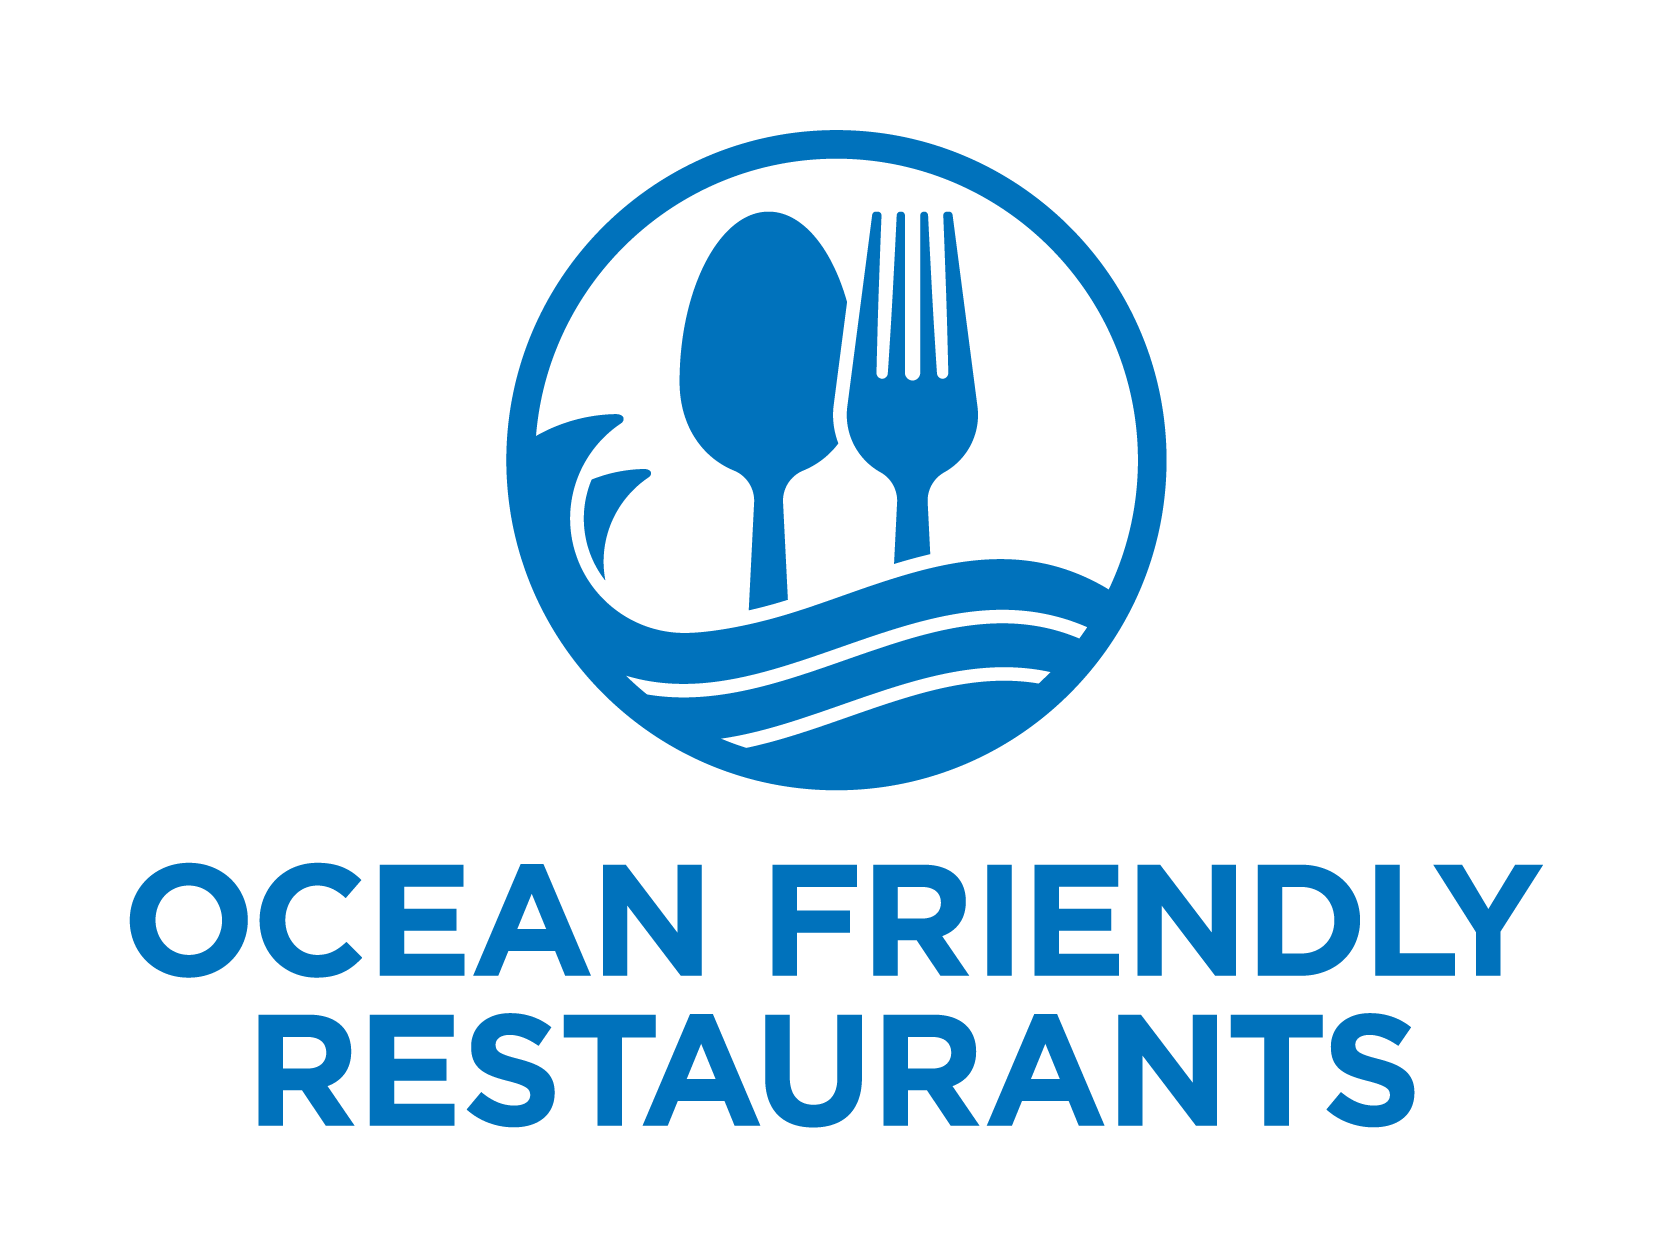 OCean Friendly Restaurants Hawai'i  - Want to find a place to eat out or get take out from that isn't using single-use plastics? OFR Hawai'i is a great program through Surfrider Foundation that connects you to these businesses and asks you to get involved by talking with your favorite restaurants about more sustainable behavior.